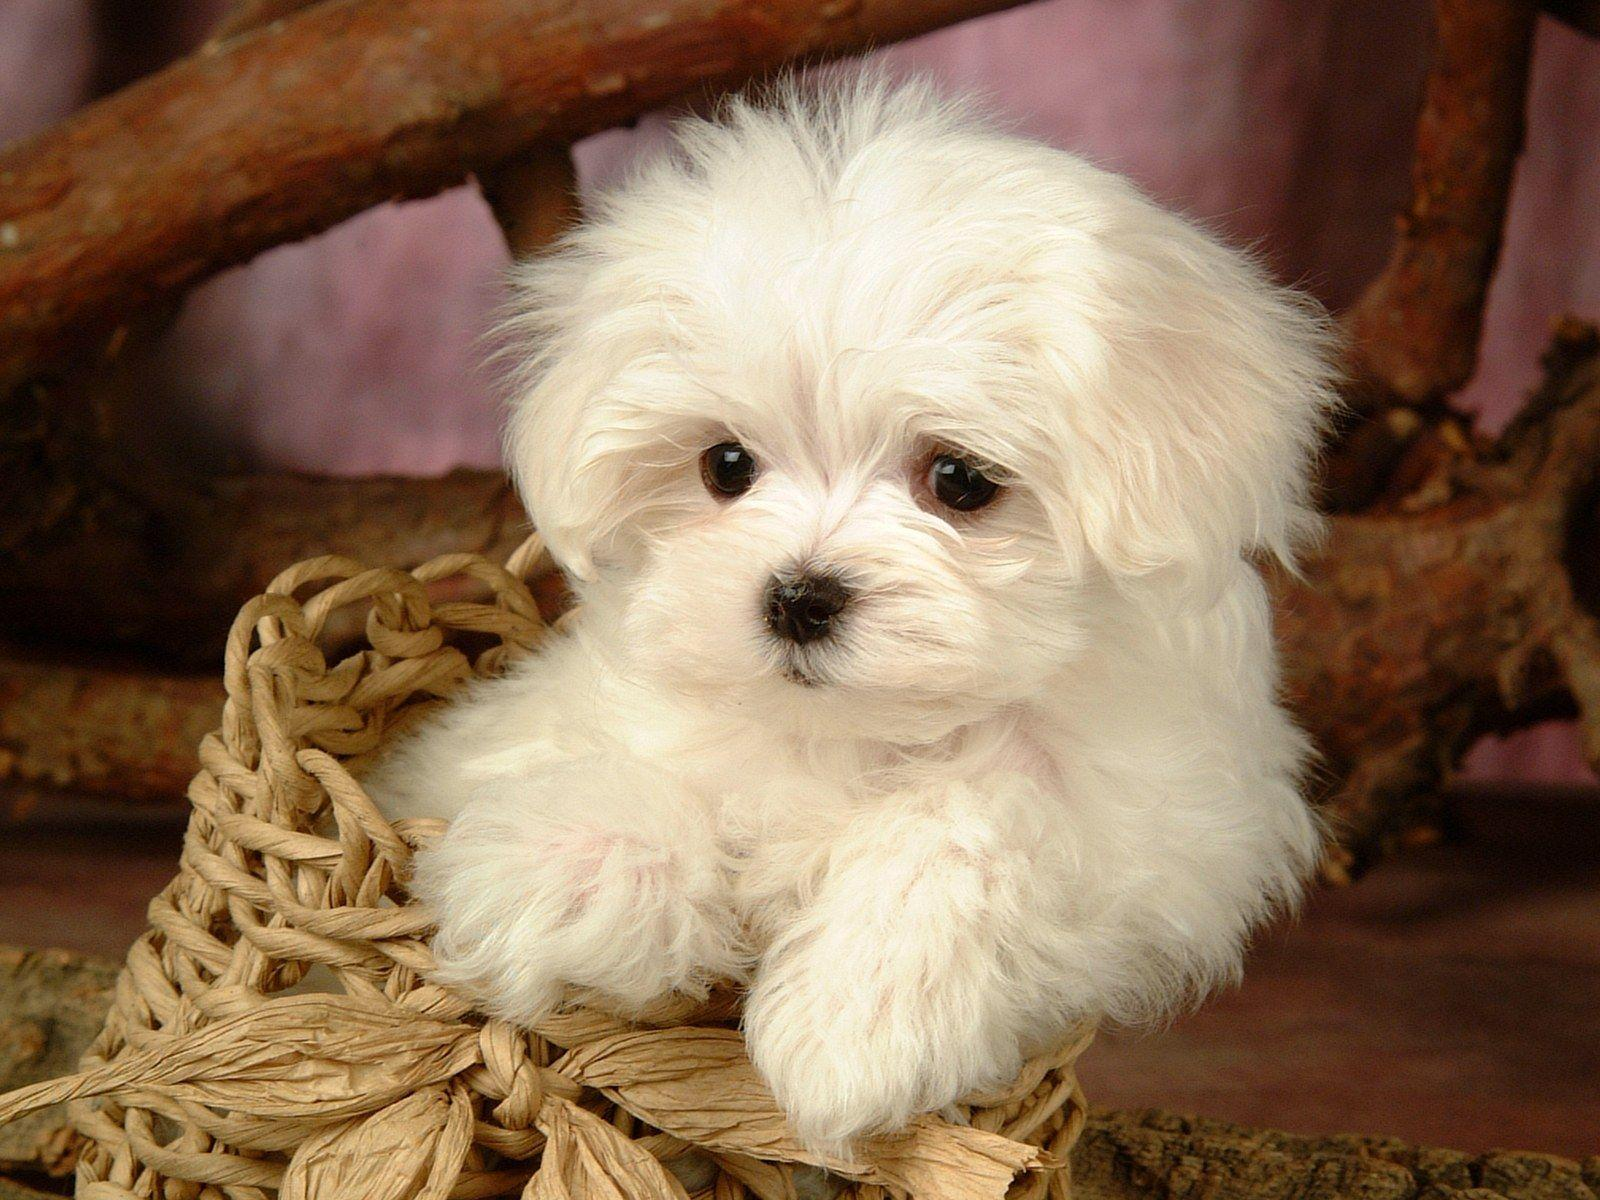 dogs | Fluffy Maltese Puppy Dogs - White Maltese Puppies ...